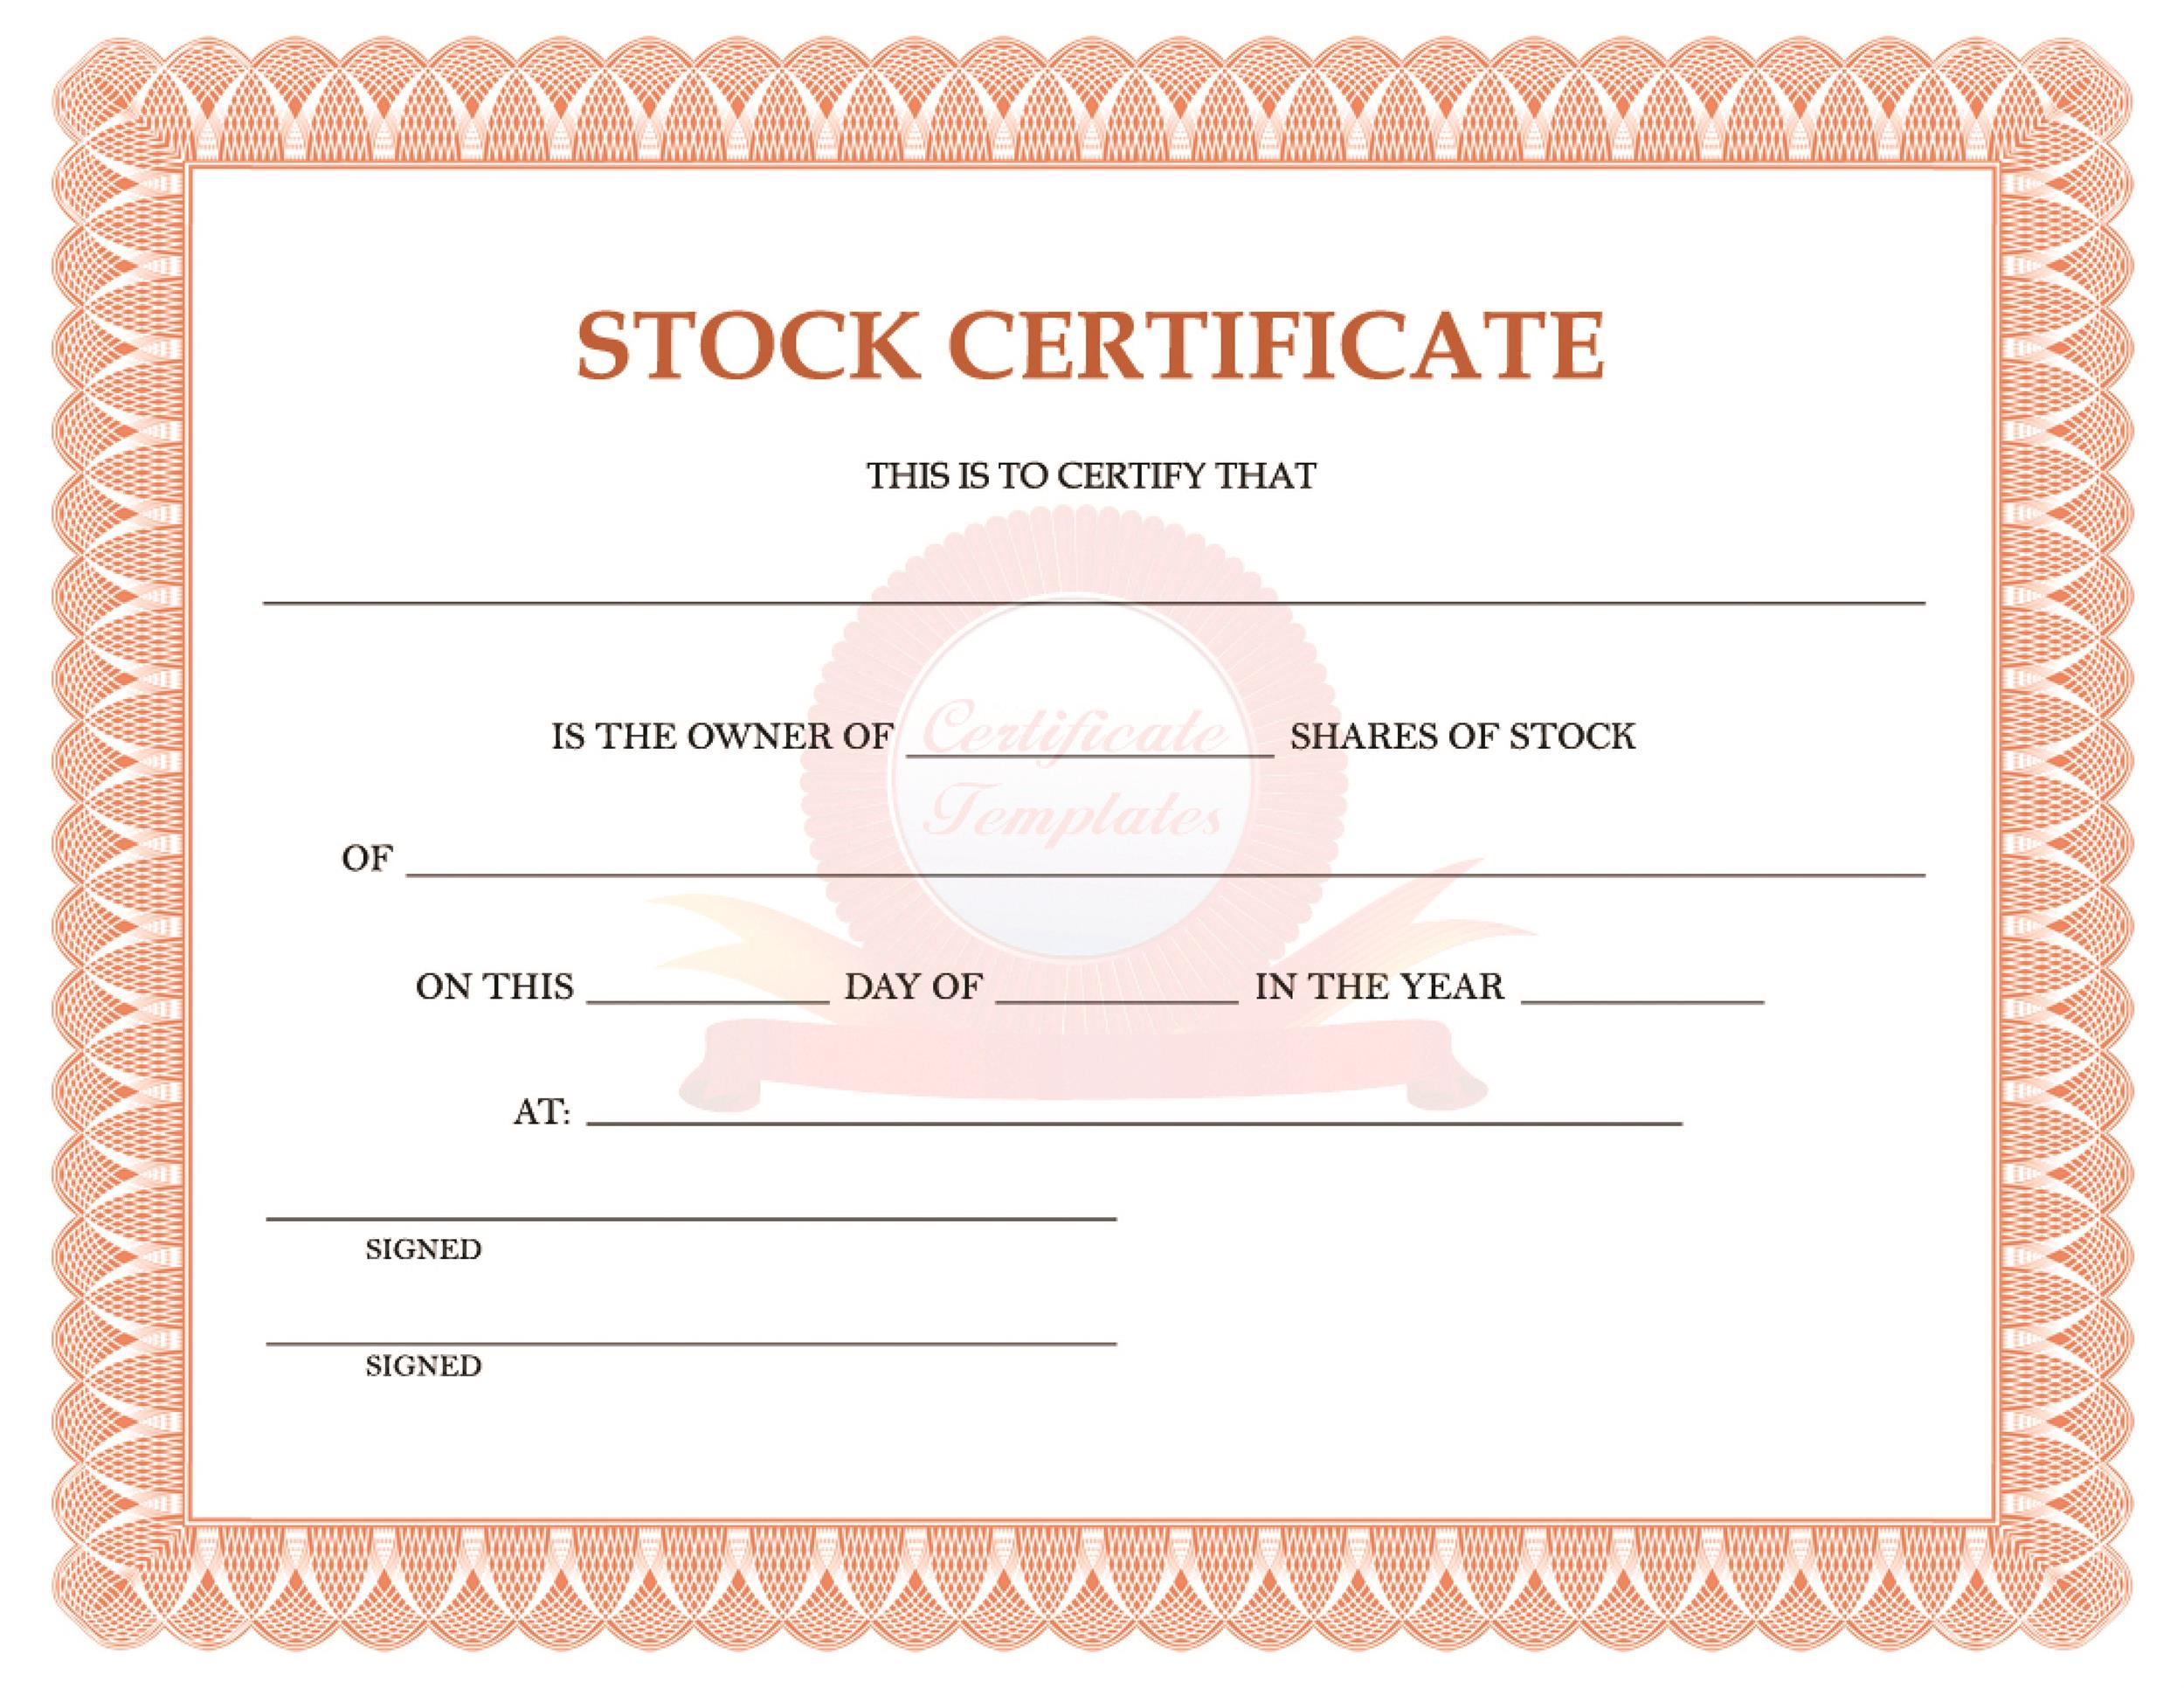 Share Certificate Template Free Download Rainbow Factory Stock